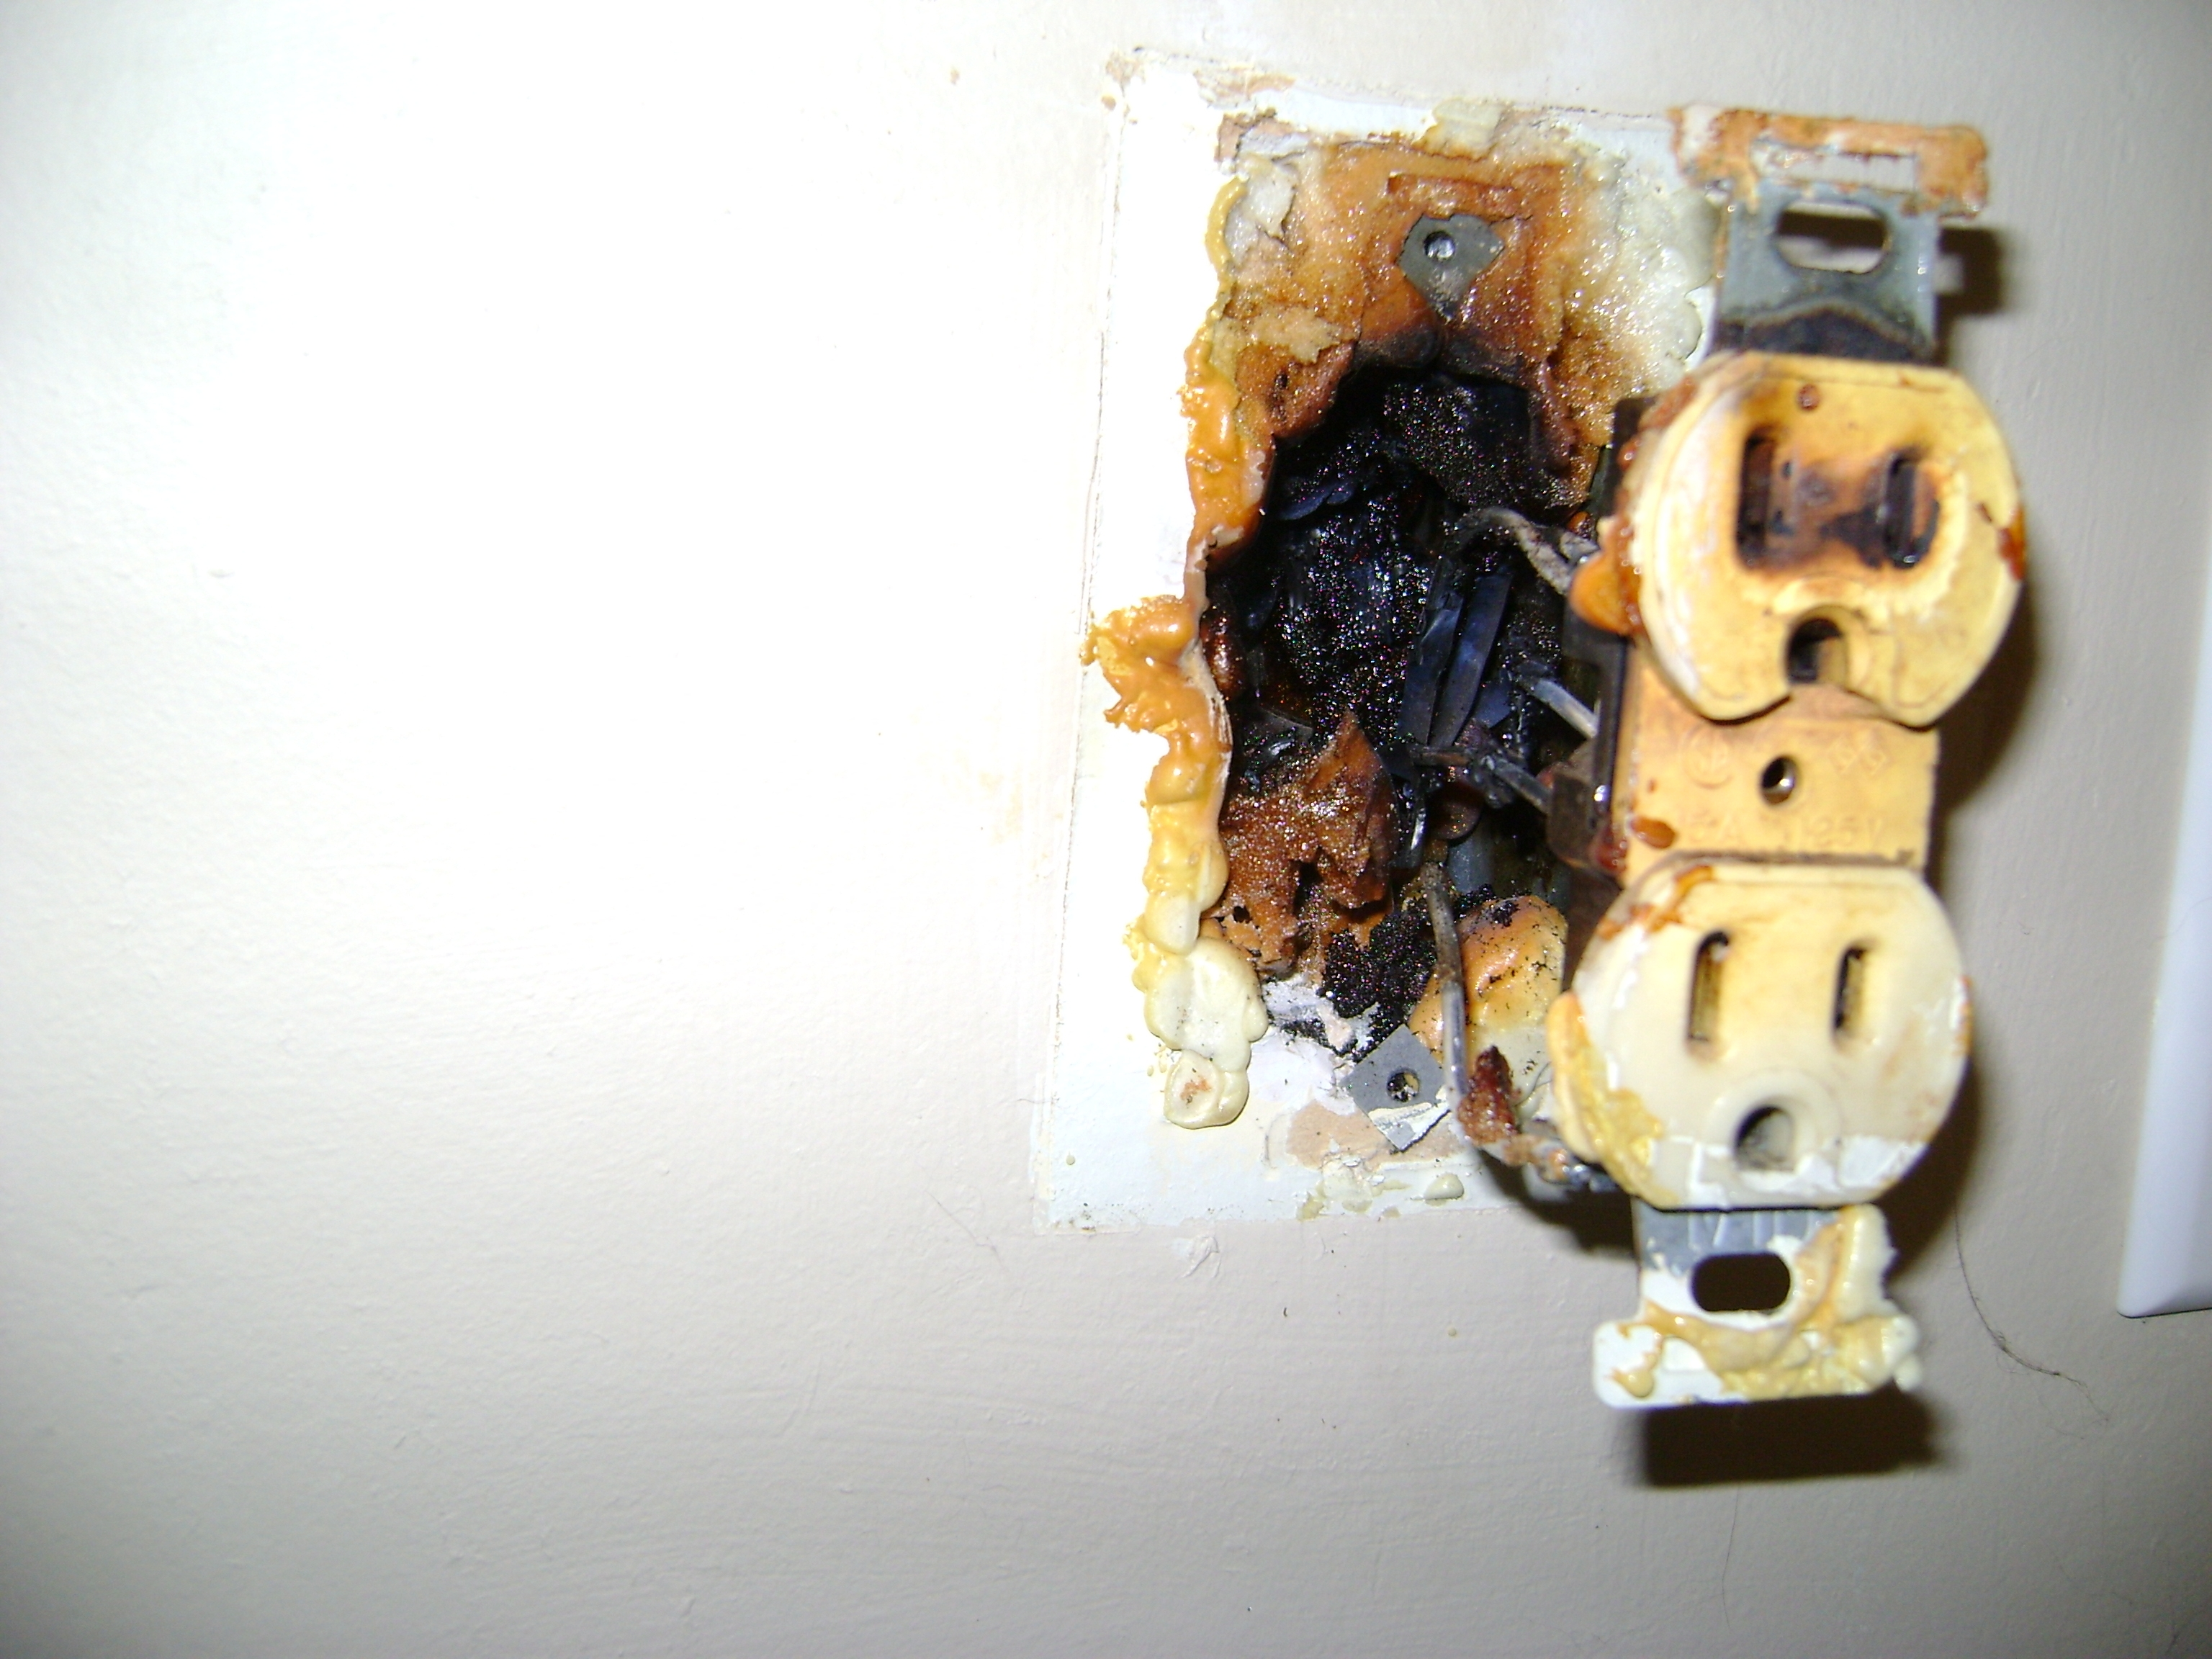 aluminum wiring captain s blog rh captainelectric ca Home Electrical Wiring Outlet Aluminum Wiring Safety